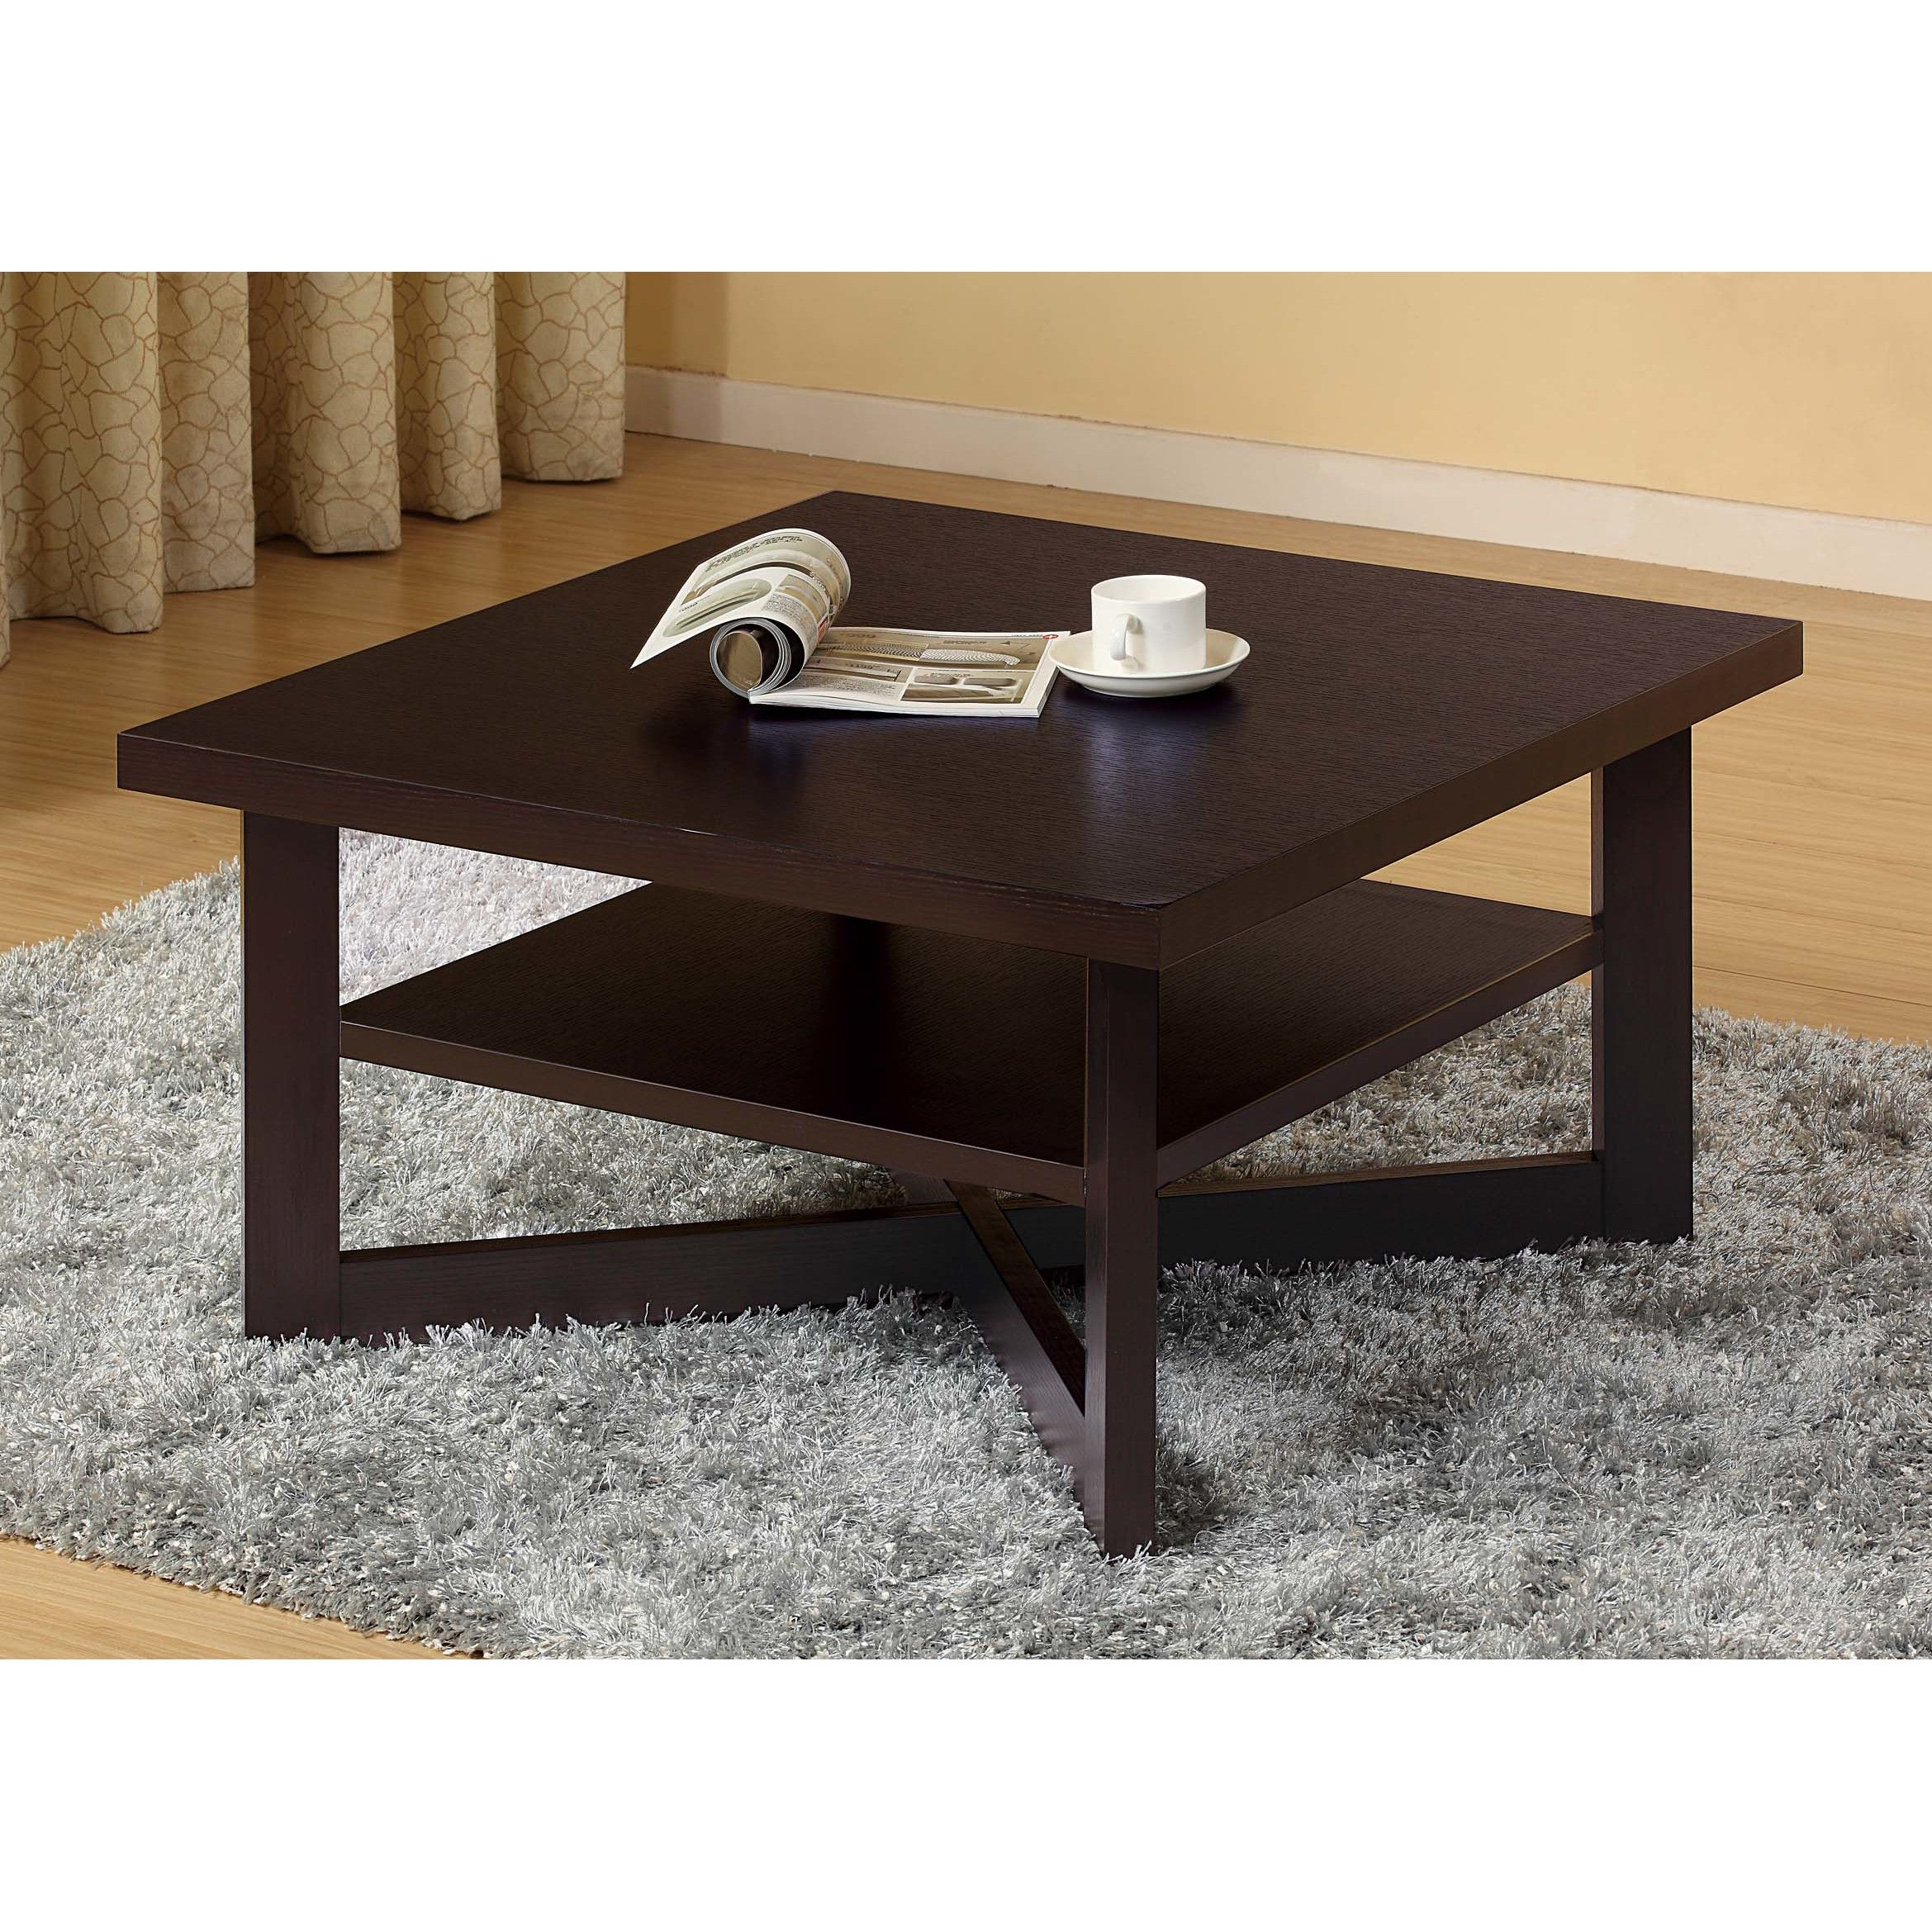 Brassex coffee table home coffee table pinterest coffee